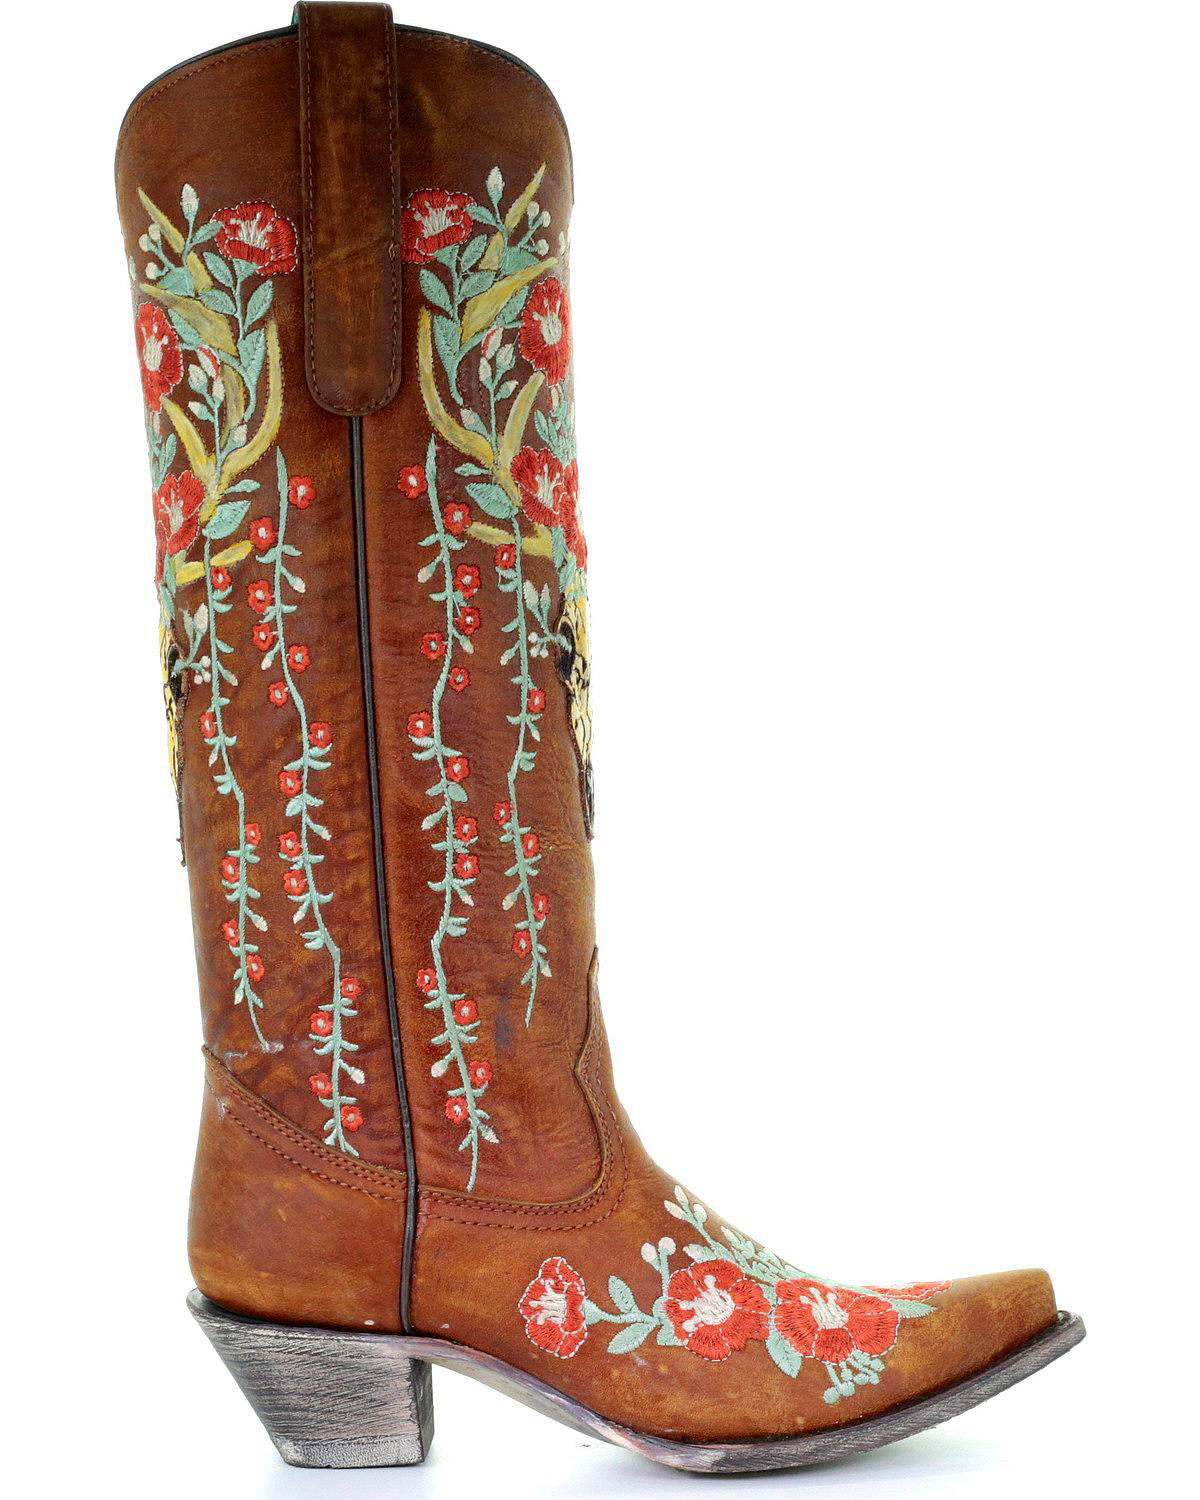 Corral Women's Deer Skull & Floral Embroidery Cowgirl Boots - Snip Toe,  Tan, hi